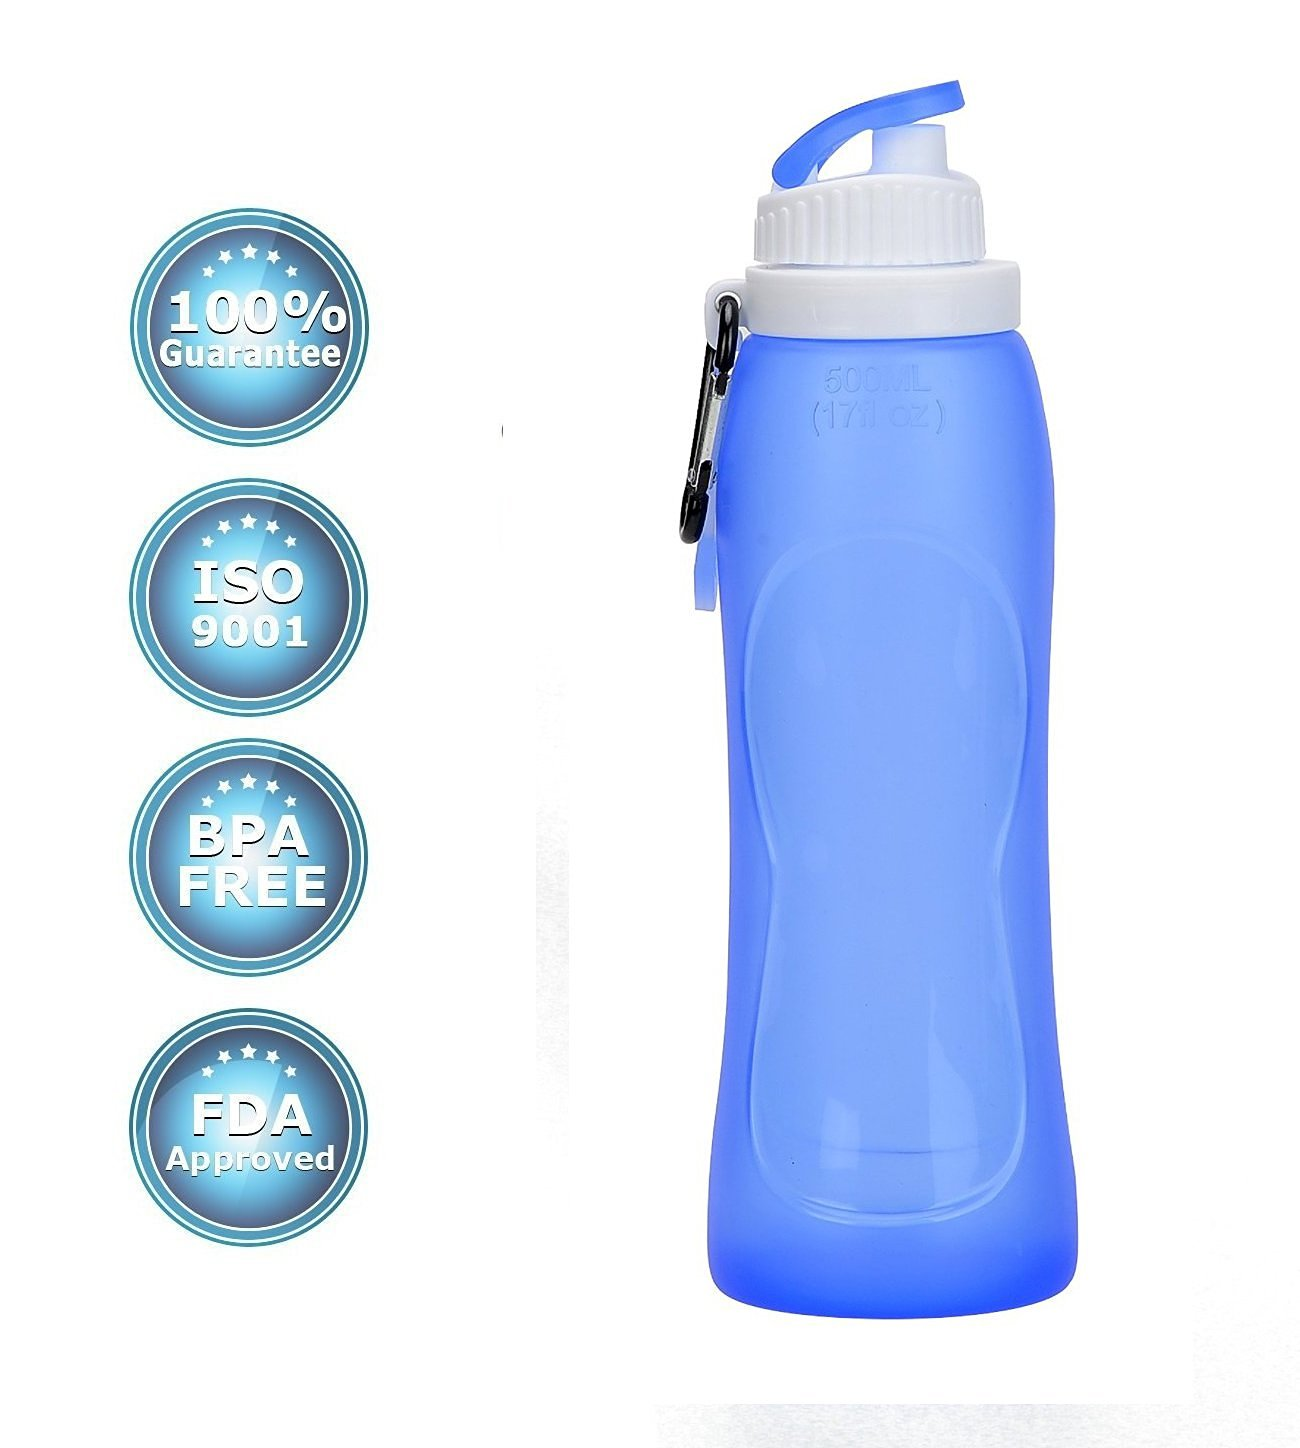 e39b59ad3c3d Cheap Collapsible Water Bottle, find Collapsible Water Bottle deals ...